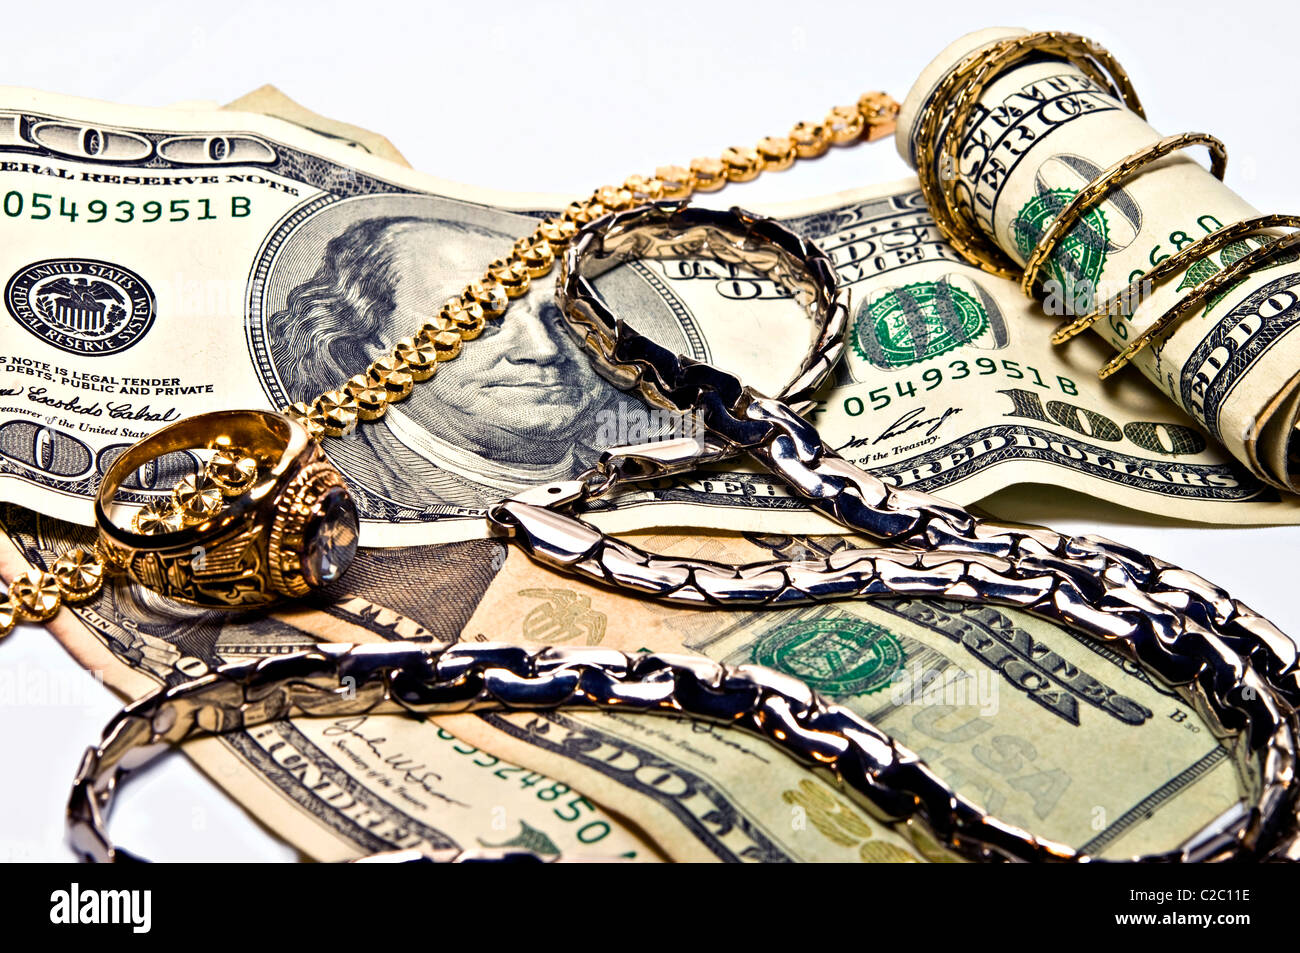 Money and jewelry as a concept for wealth, cash for gold and silver, or saving for retirement. - Stock Image